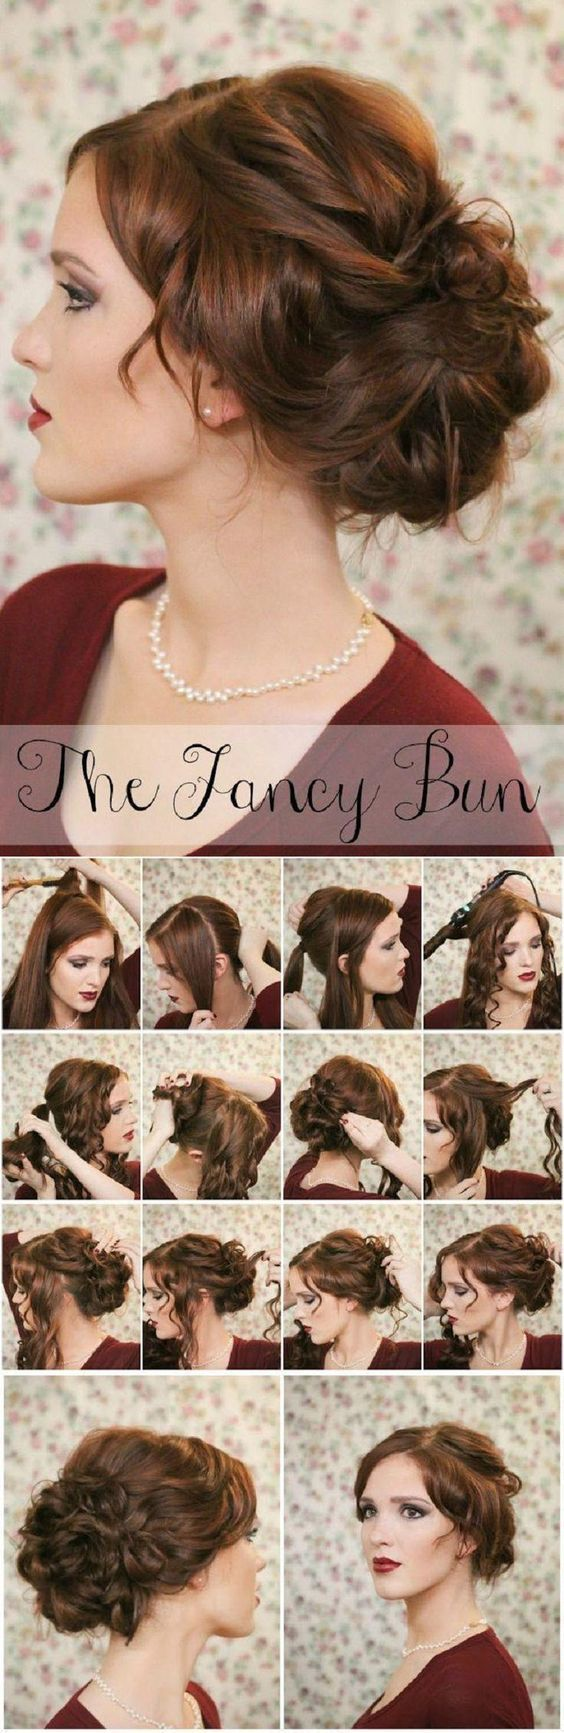 Best DIY Wedding Hairstyles with Tutorials  Updo Bridesmaids